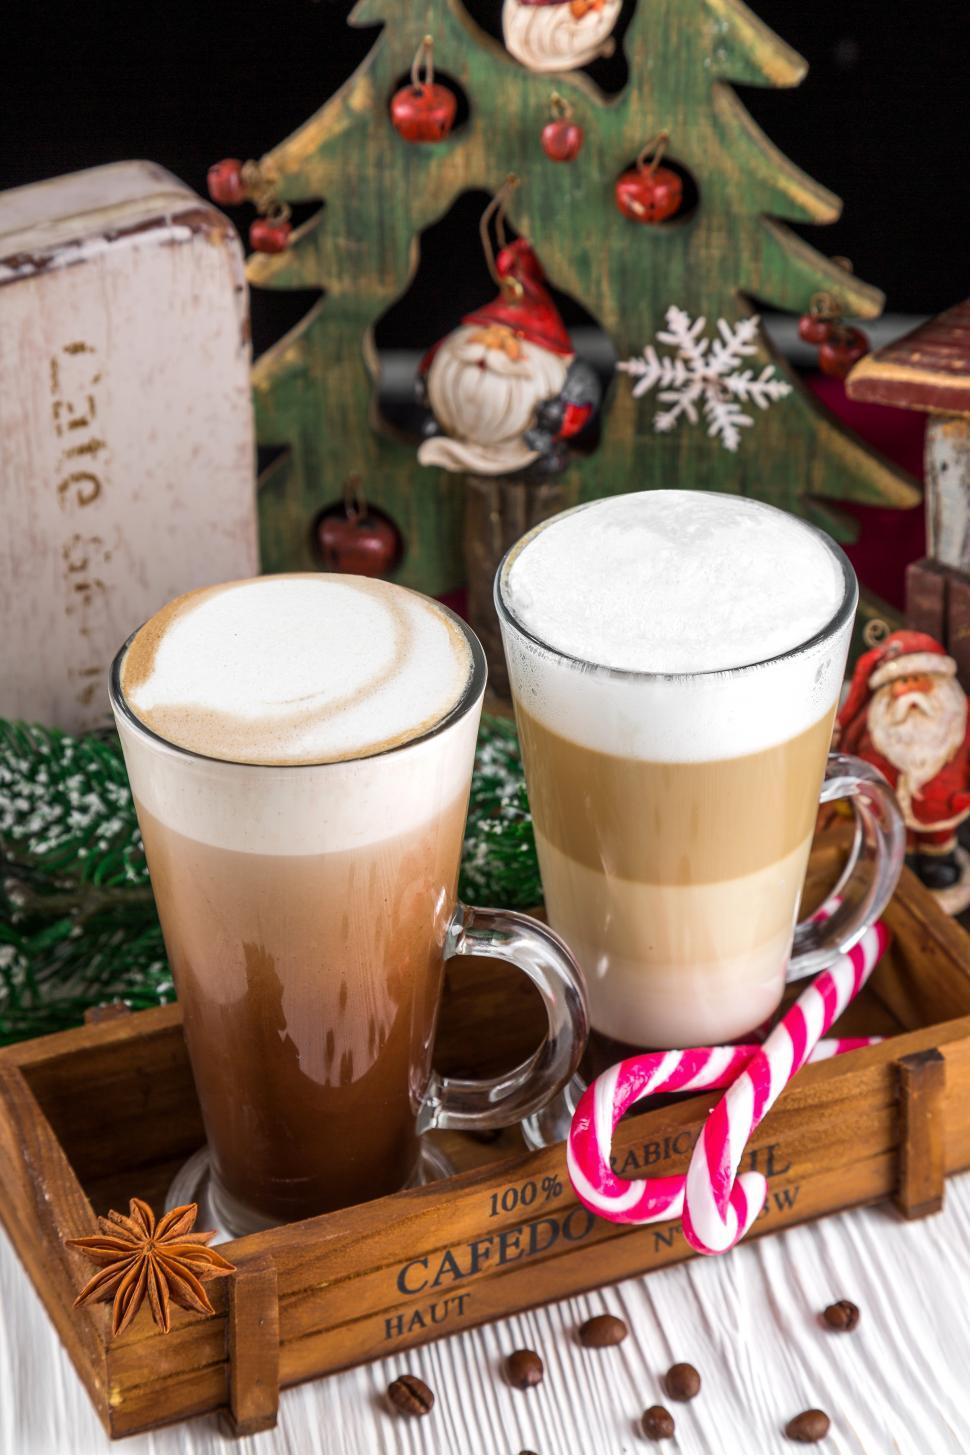 Download Free Stock HD Photo of Close up of frothy, layered cappuccino in a clear glass mugs Online